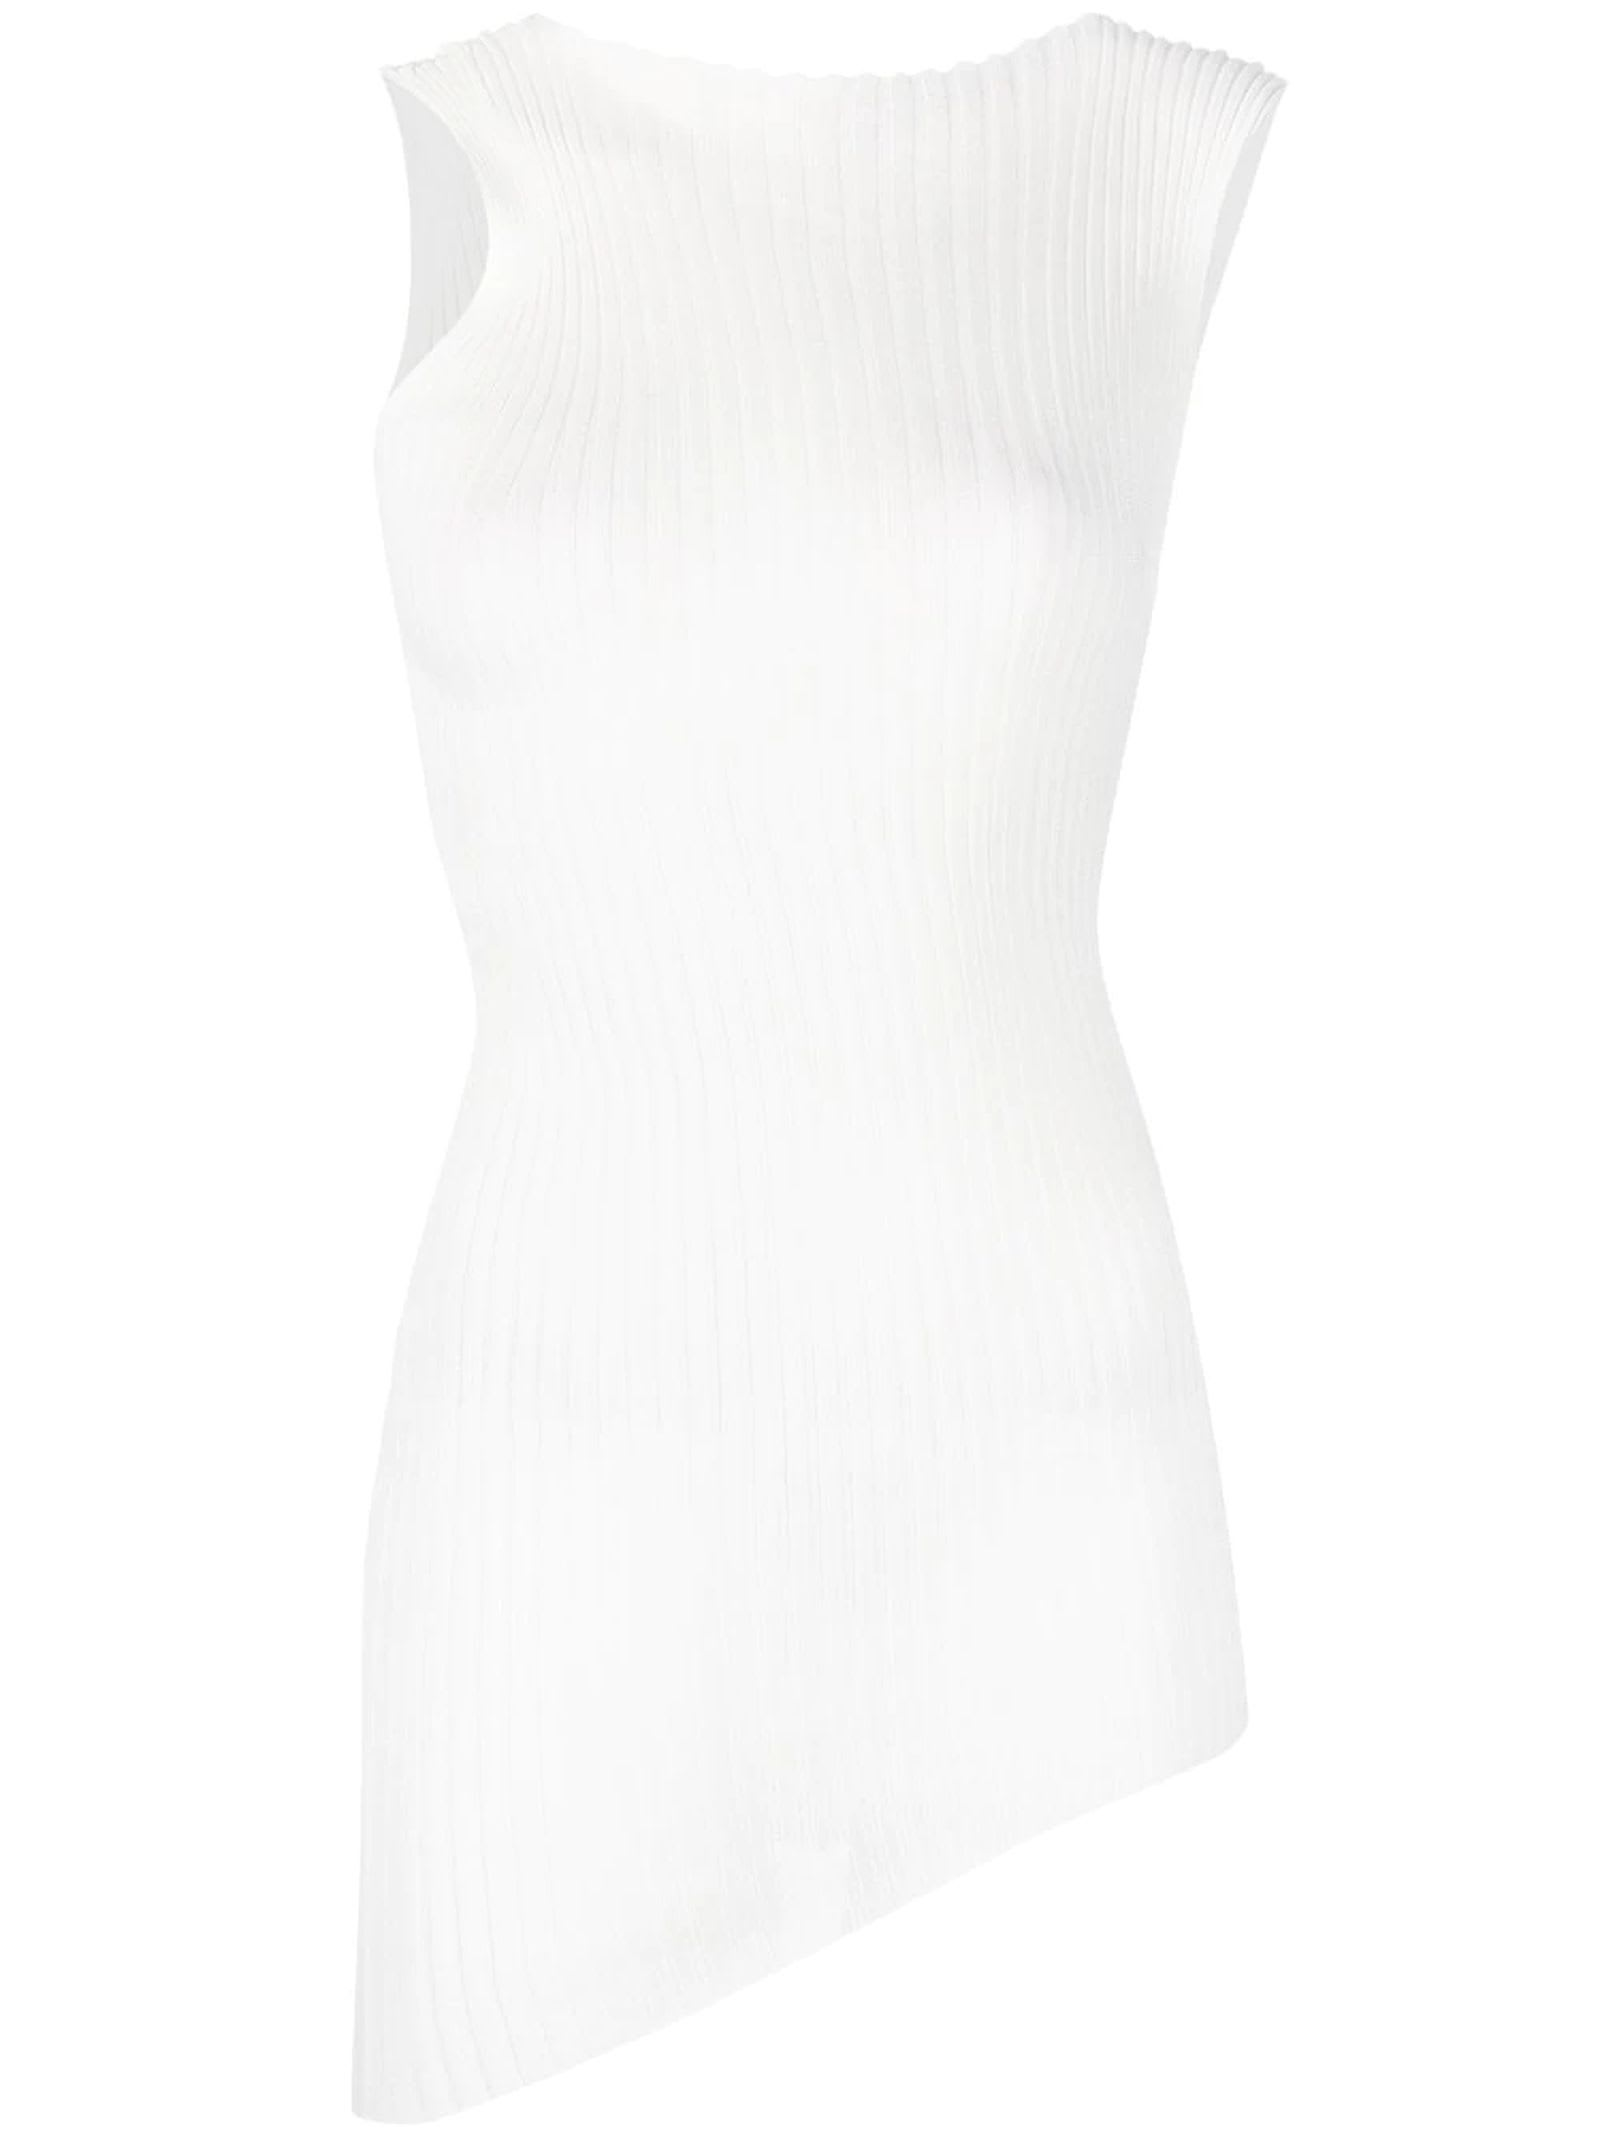 Maison Margiela WHITE COTTON BLEND TANK TOP